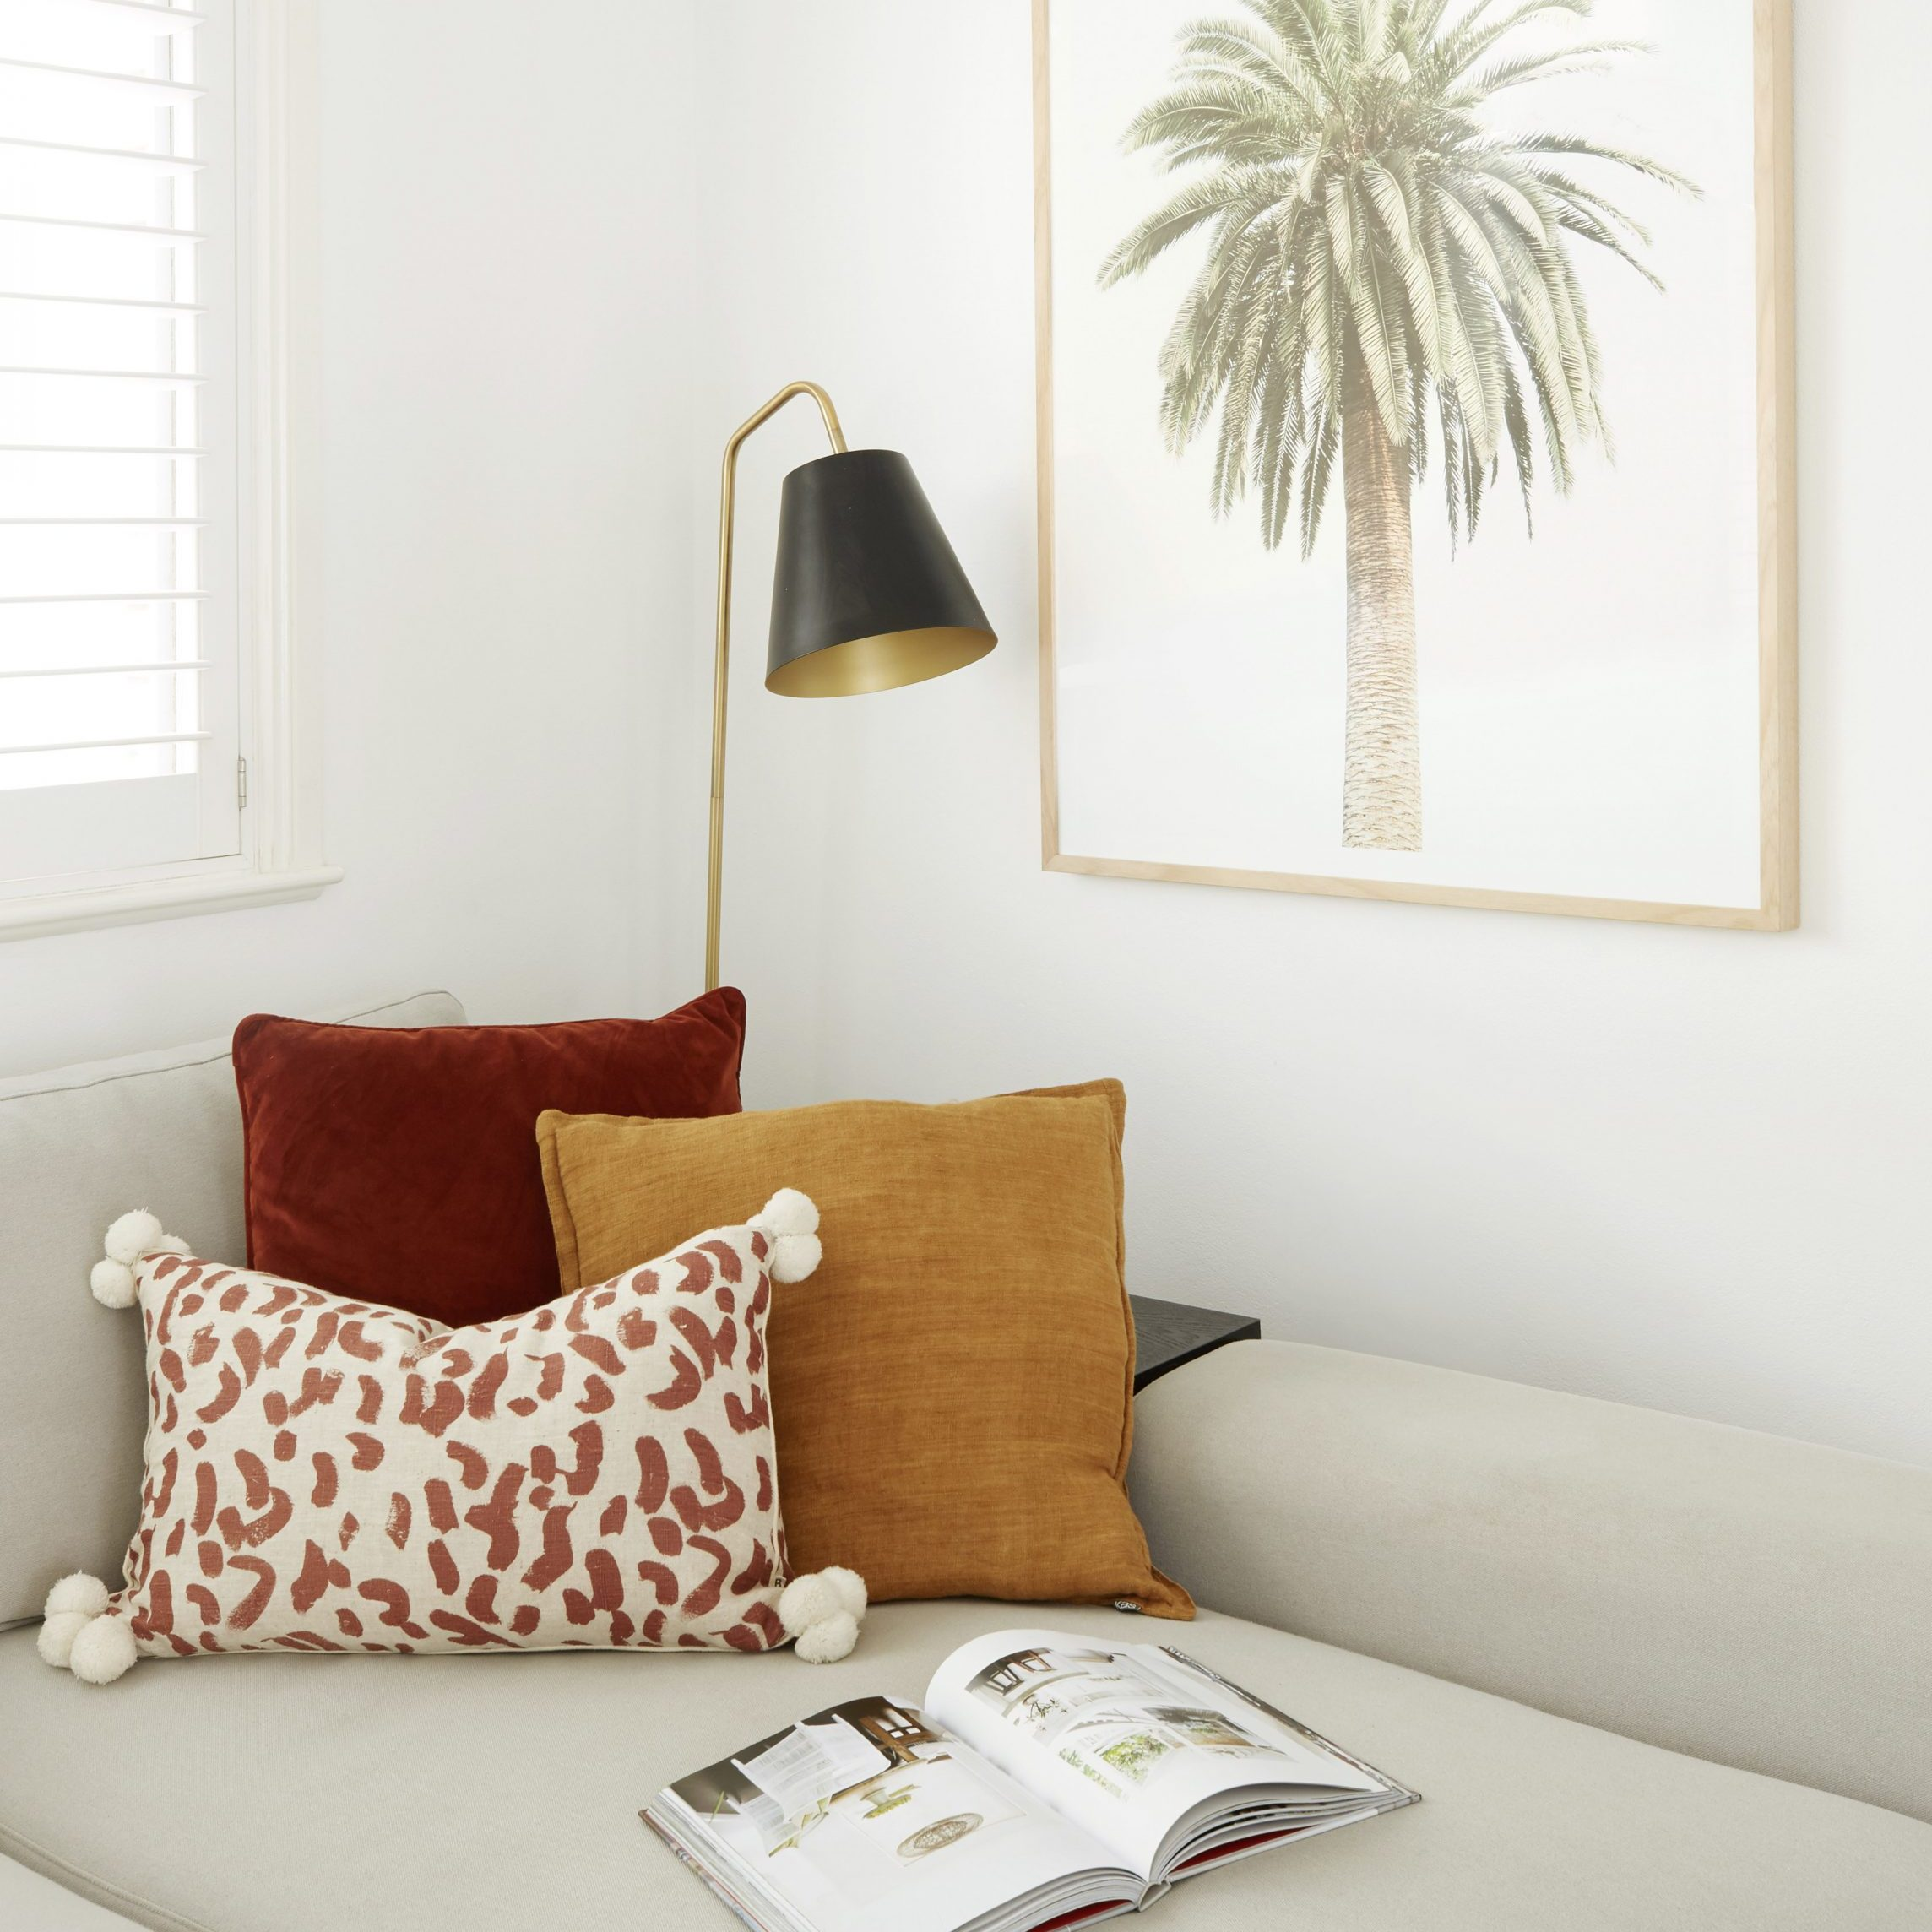 Simple Step, add colour and texture. cushions. lamp. couch